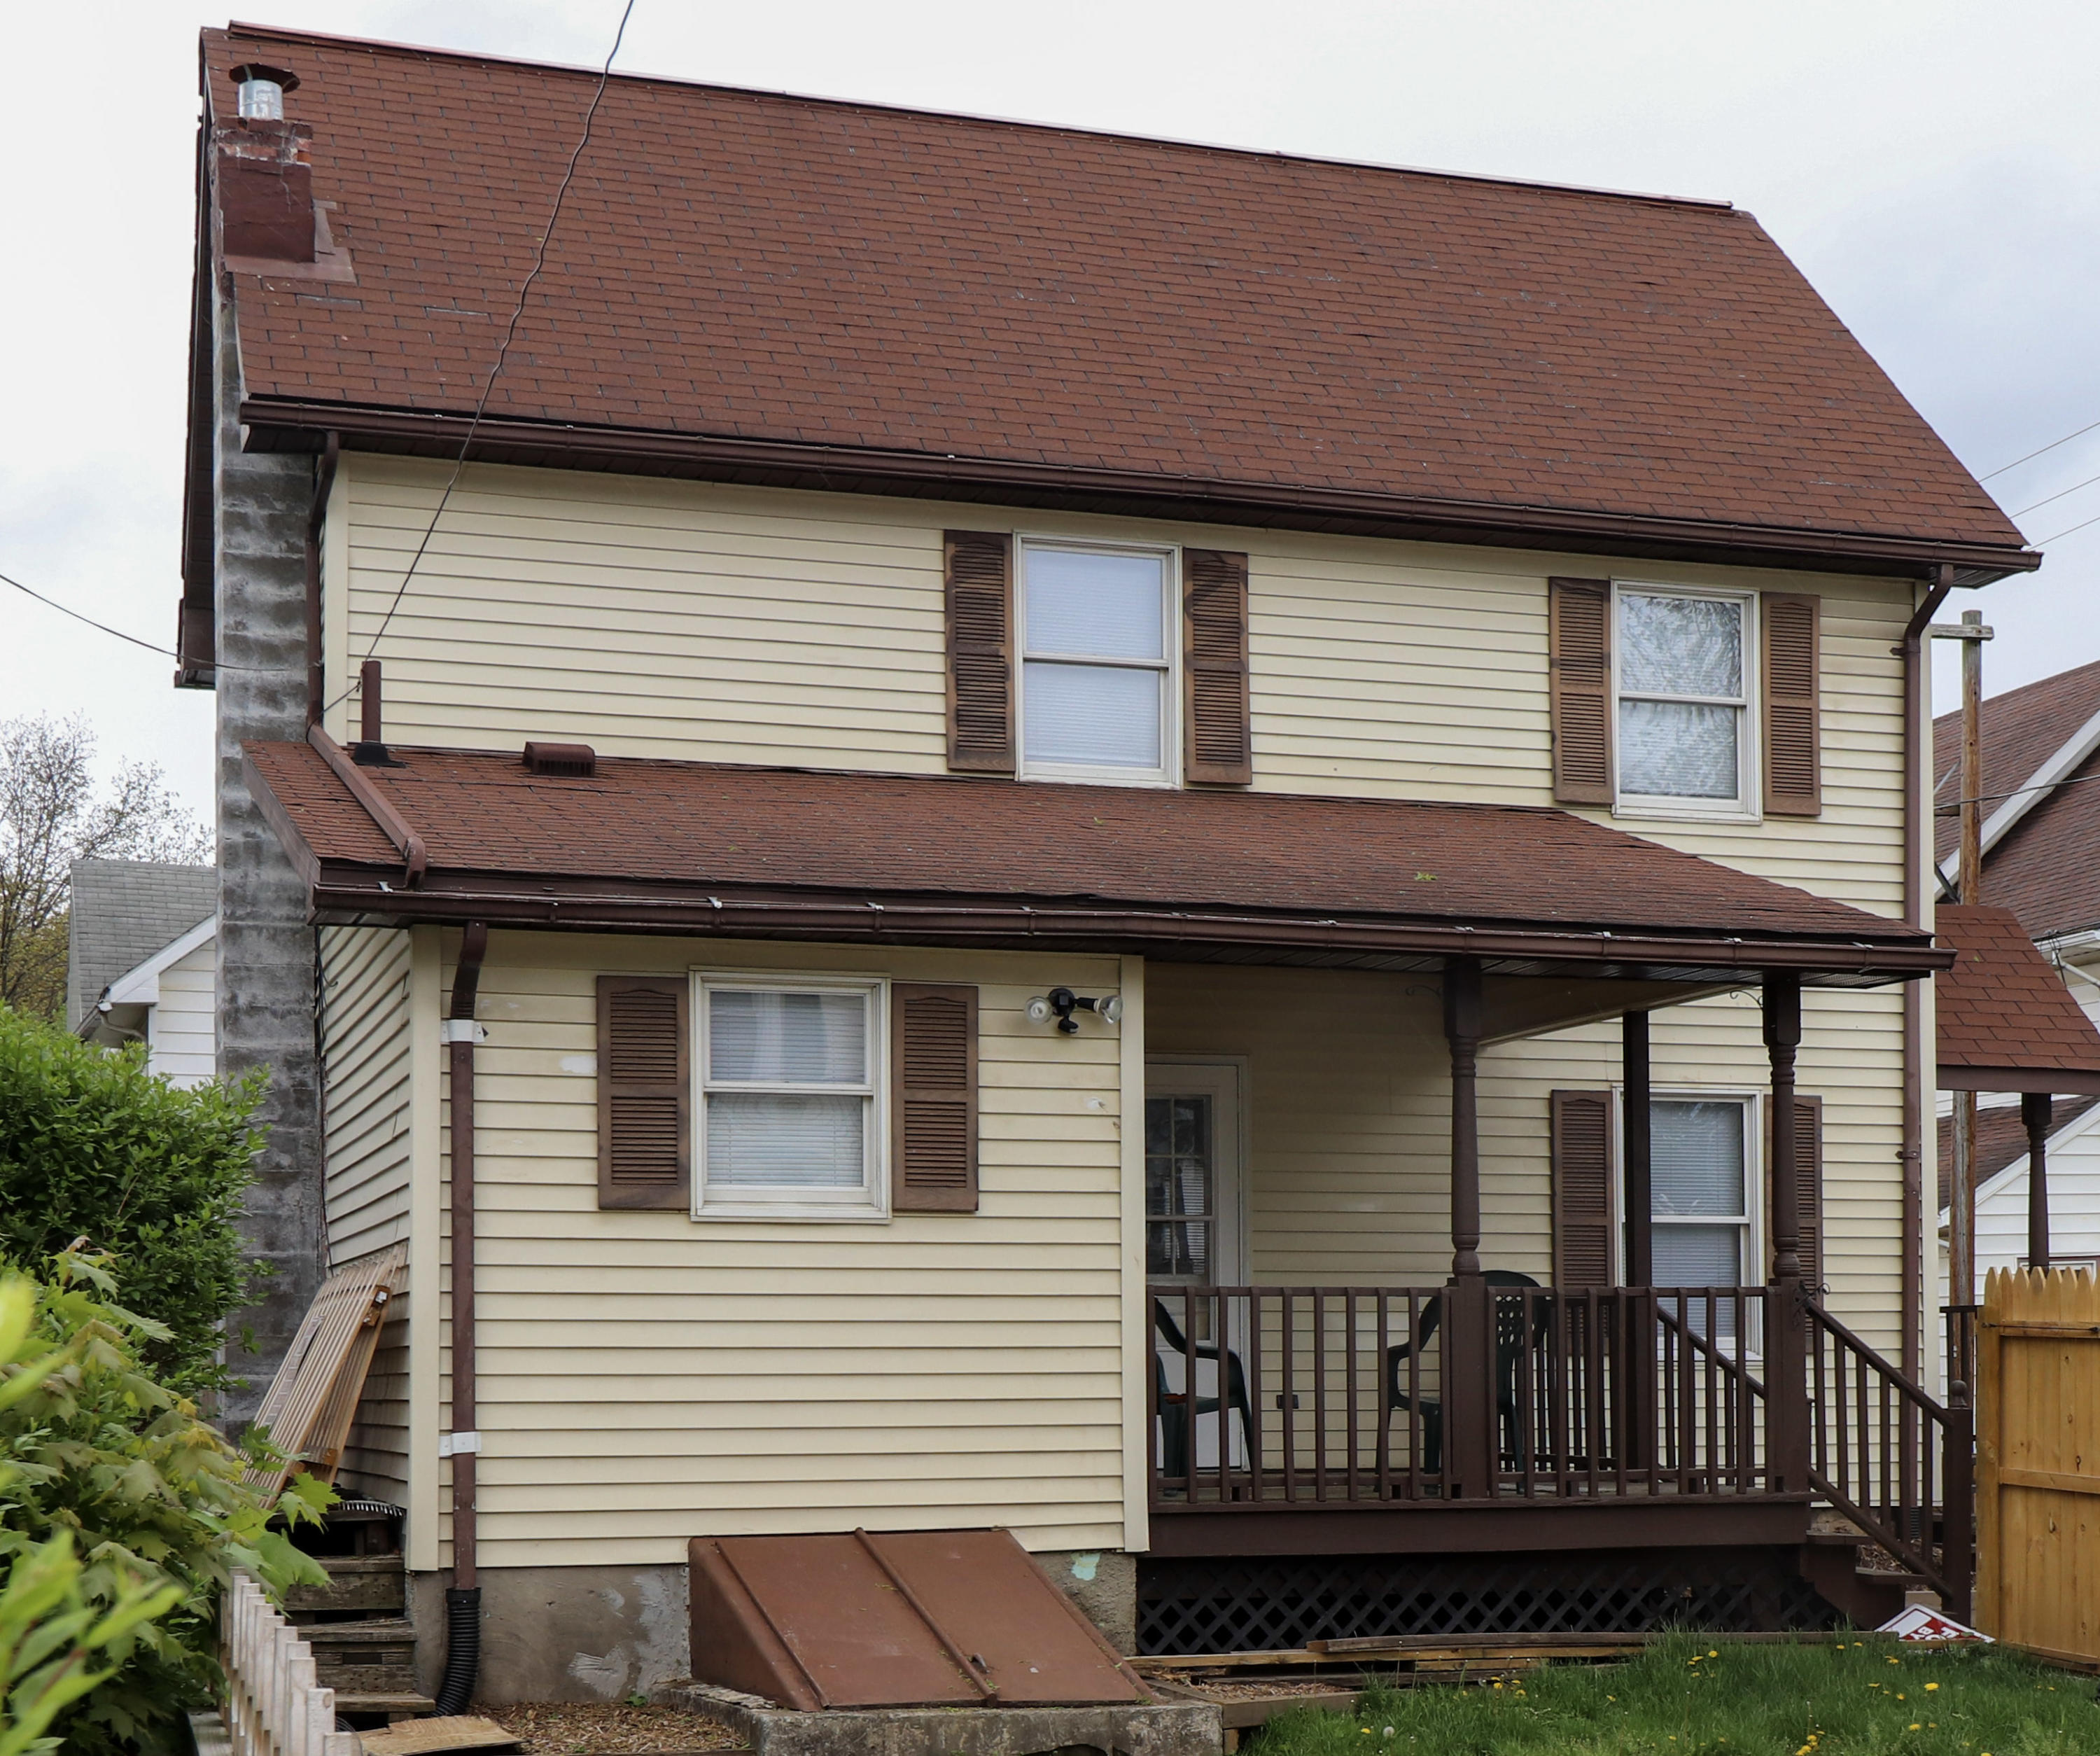 621 8TH AVENUE, Williamsport, PA 17701, 2 Bedrooms Bedrooms, ,1 BathroomBathrooms,Residential,For sale,8TH,WB-92432